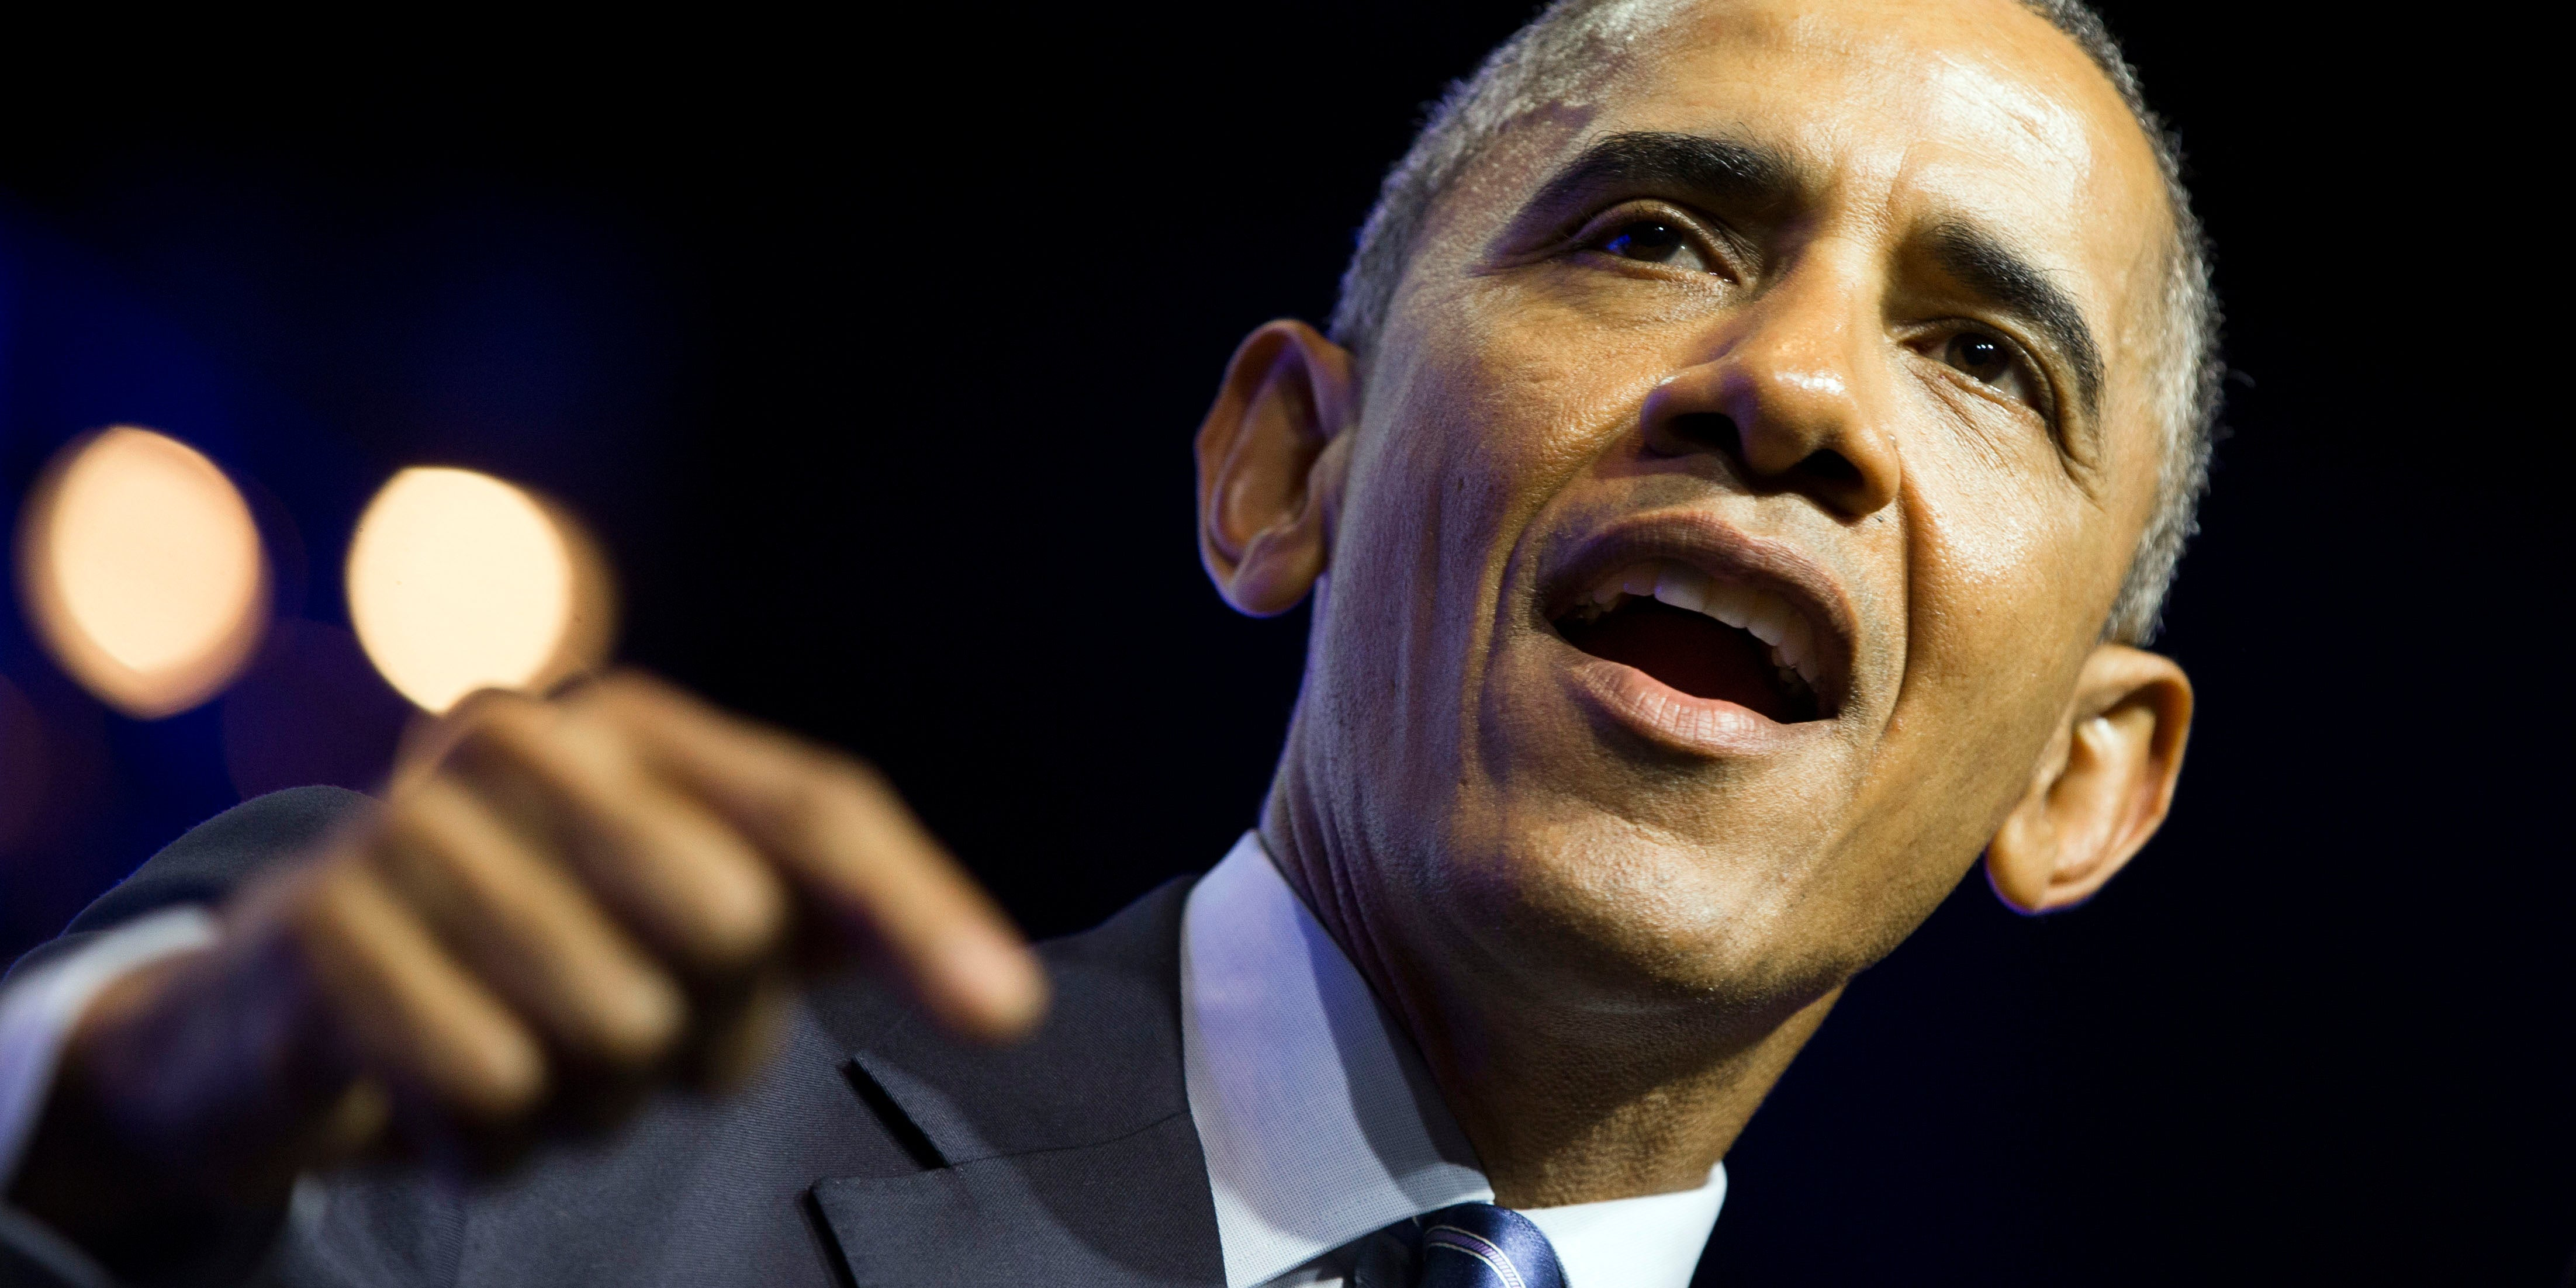 Obama Announces New ConnectHome Plan to Get Poor Households Online